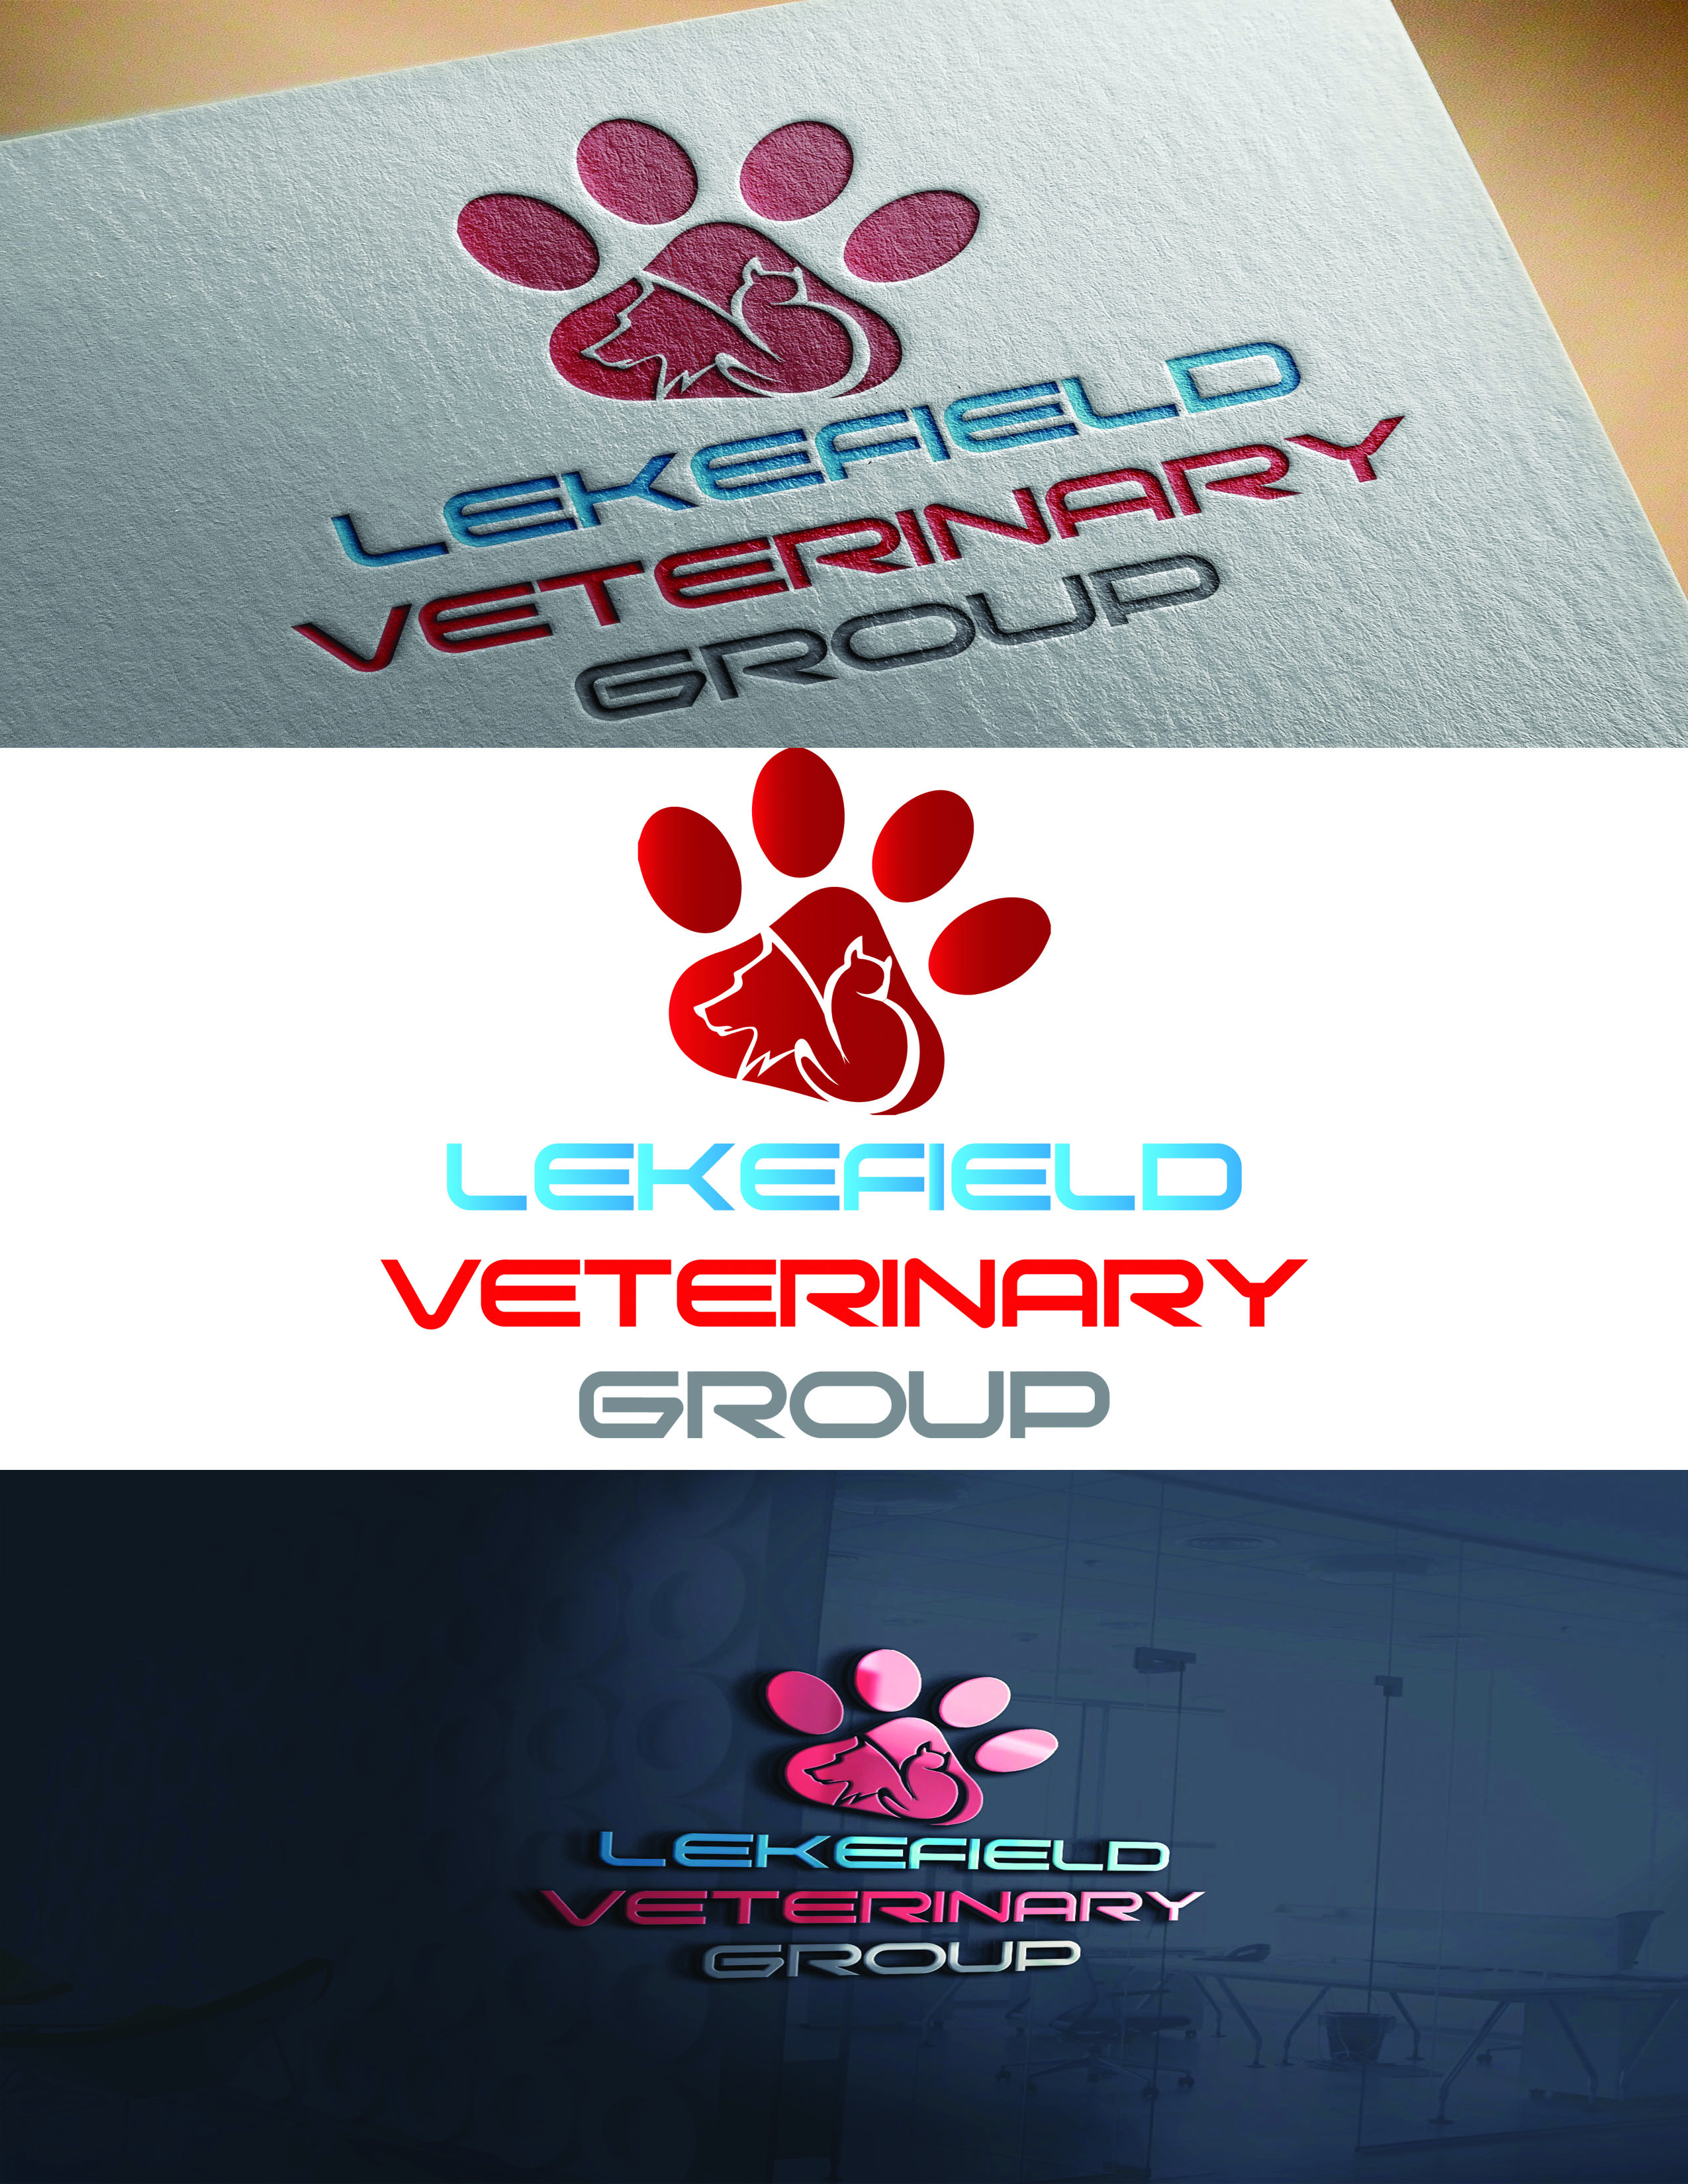 Logo Design by Umair ahmed Iqbal - Entry No. 42 in the Logo Design Contest Inspiring Logo Design for Lakefield Veterinary Group.